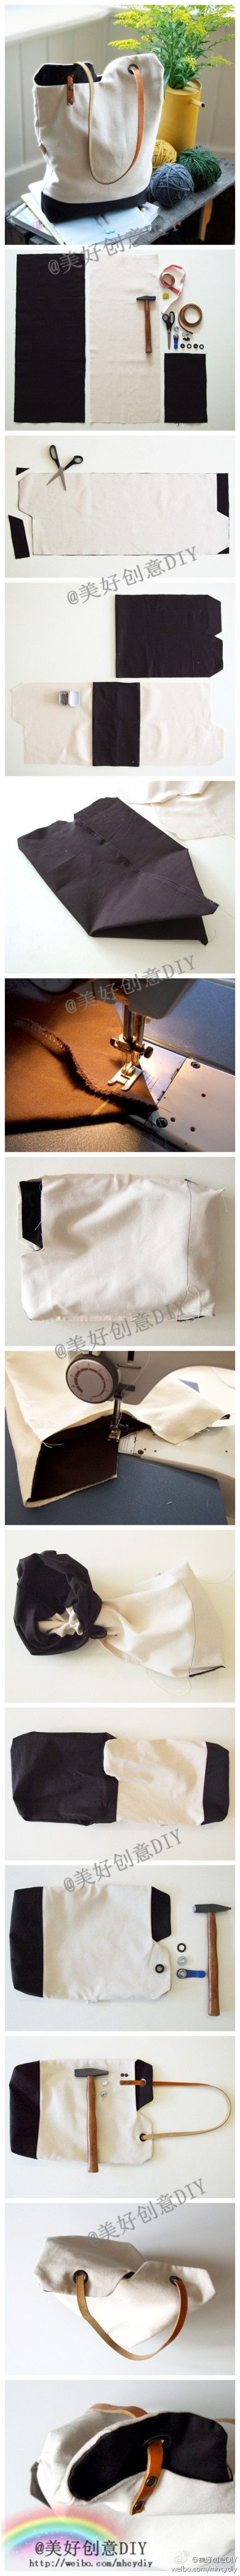 i think a can sew this bag.. looks quite easy :-):